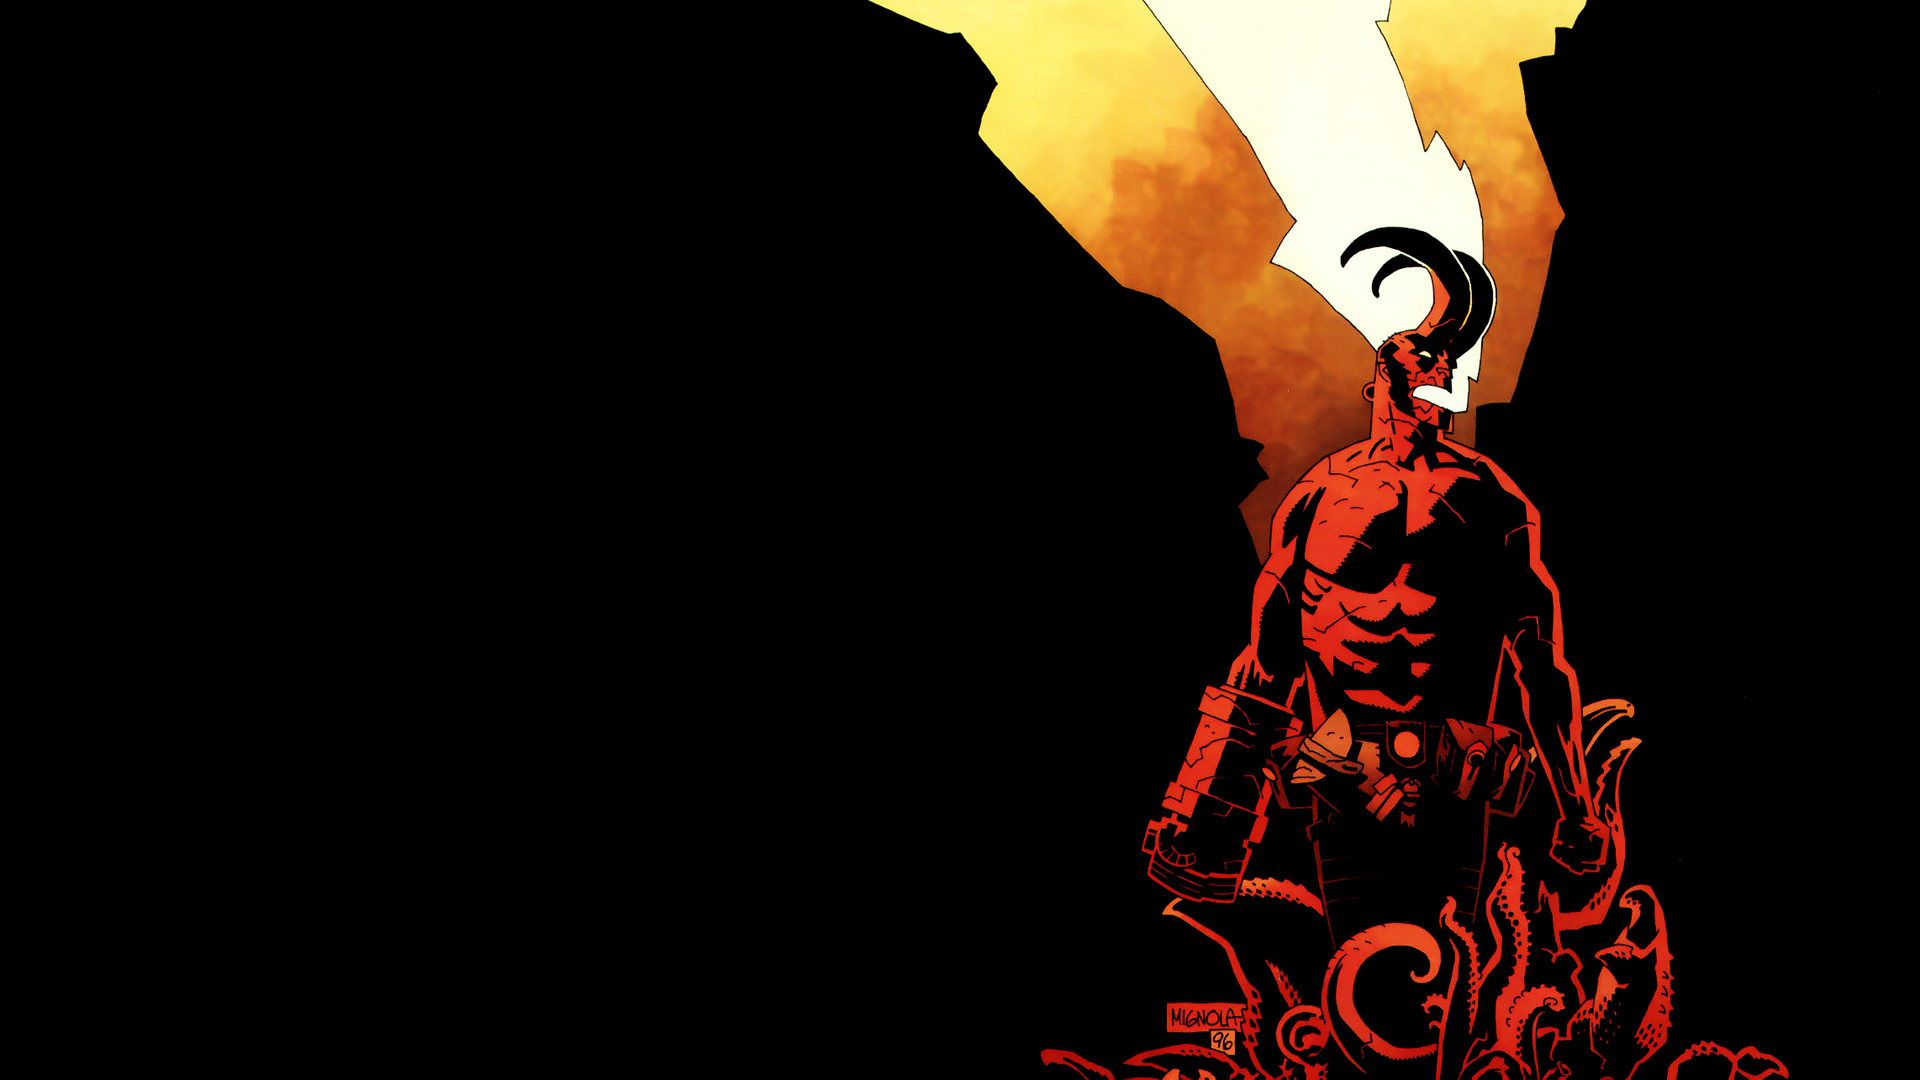 Wallpaper Abyss Explore the Collection Hellboy Comics Hellboy 207120 1920x1080